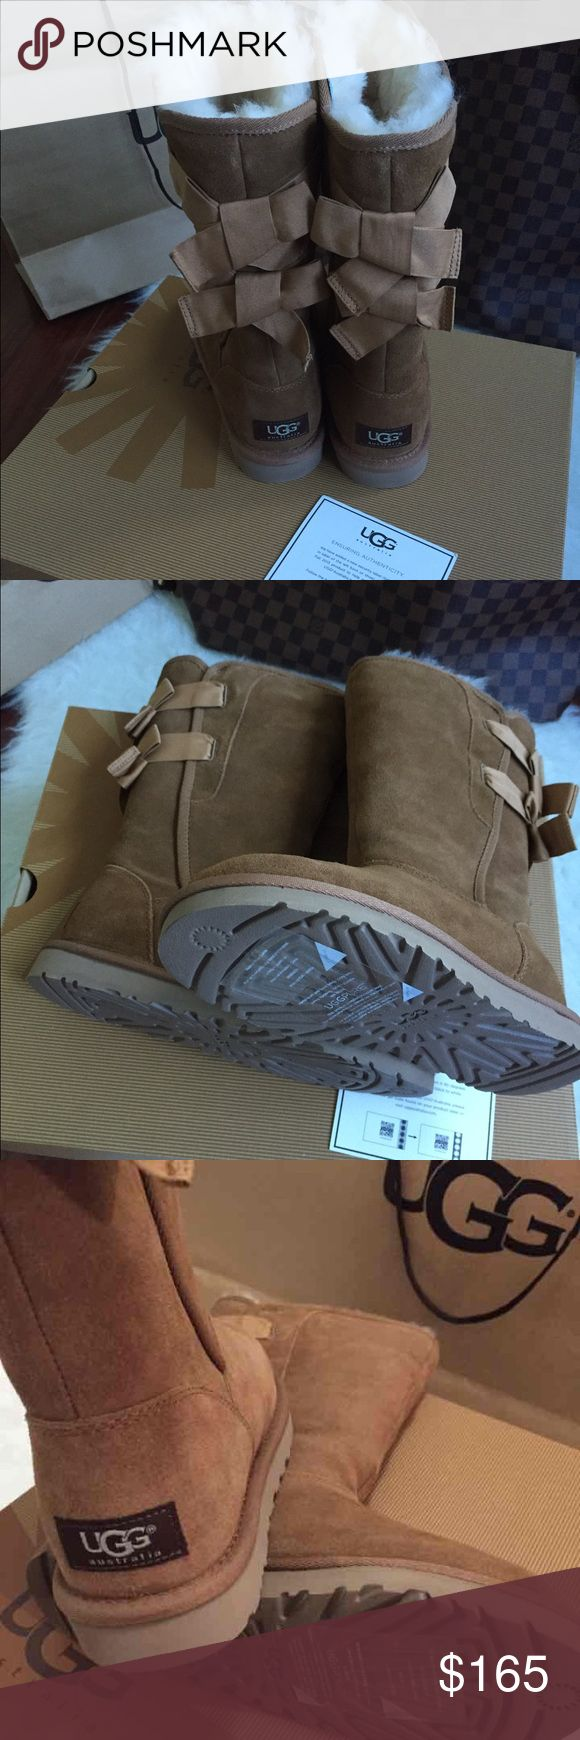 UGG Women EVERLEIGH boots New with tag and box .100% authentic and scannable .waterproof and easy to clean with UGG cleaners. These beauties were purchased at an UGG store and the receipt is available.please no trade questions and only reasonable offers .Be ready this winter in your UGG's UGG Shoes Winter & Rain Boots